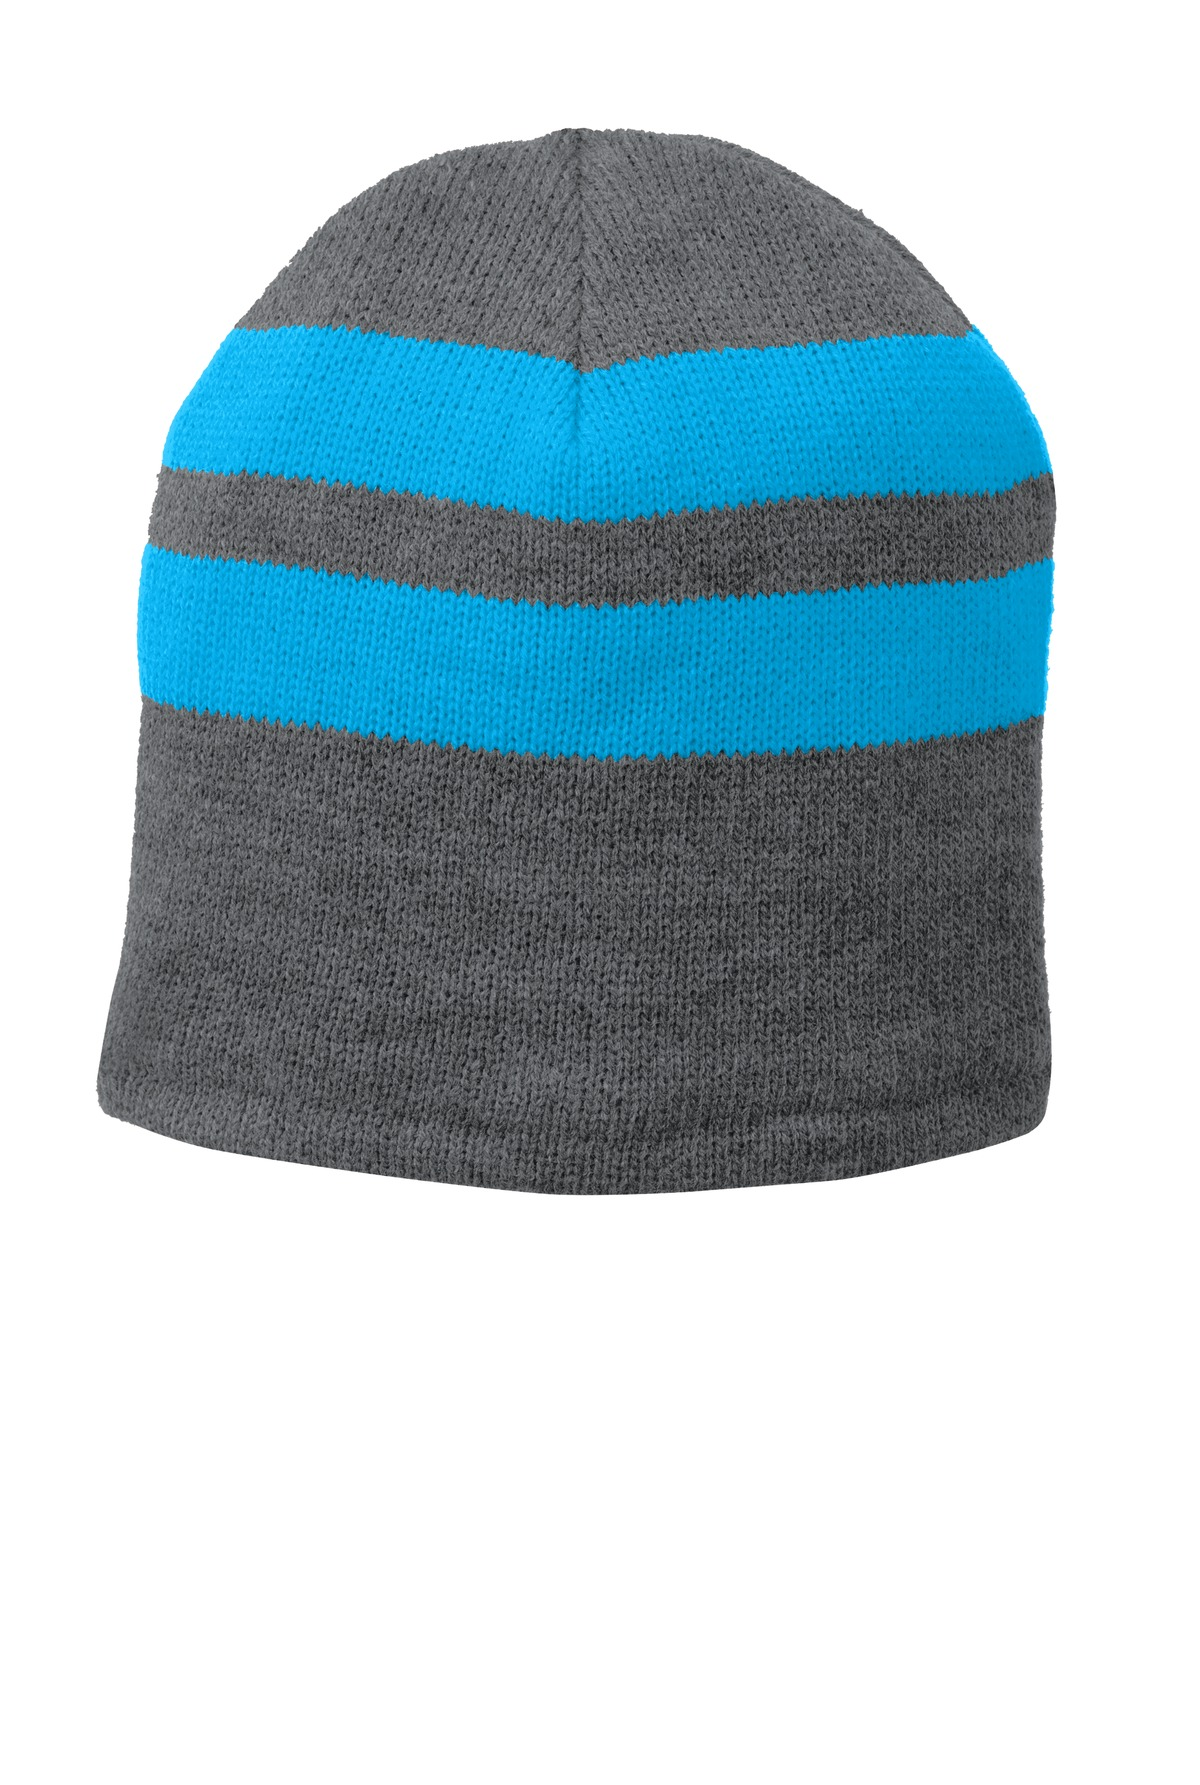 Port & Company  C922 - Fleece-Lined Striped Beanie Cap